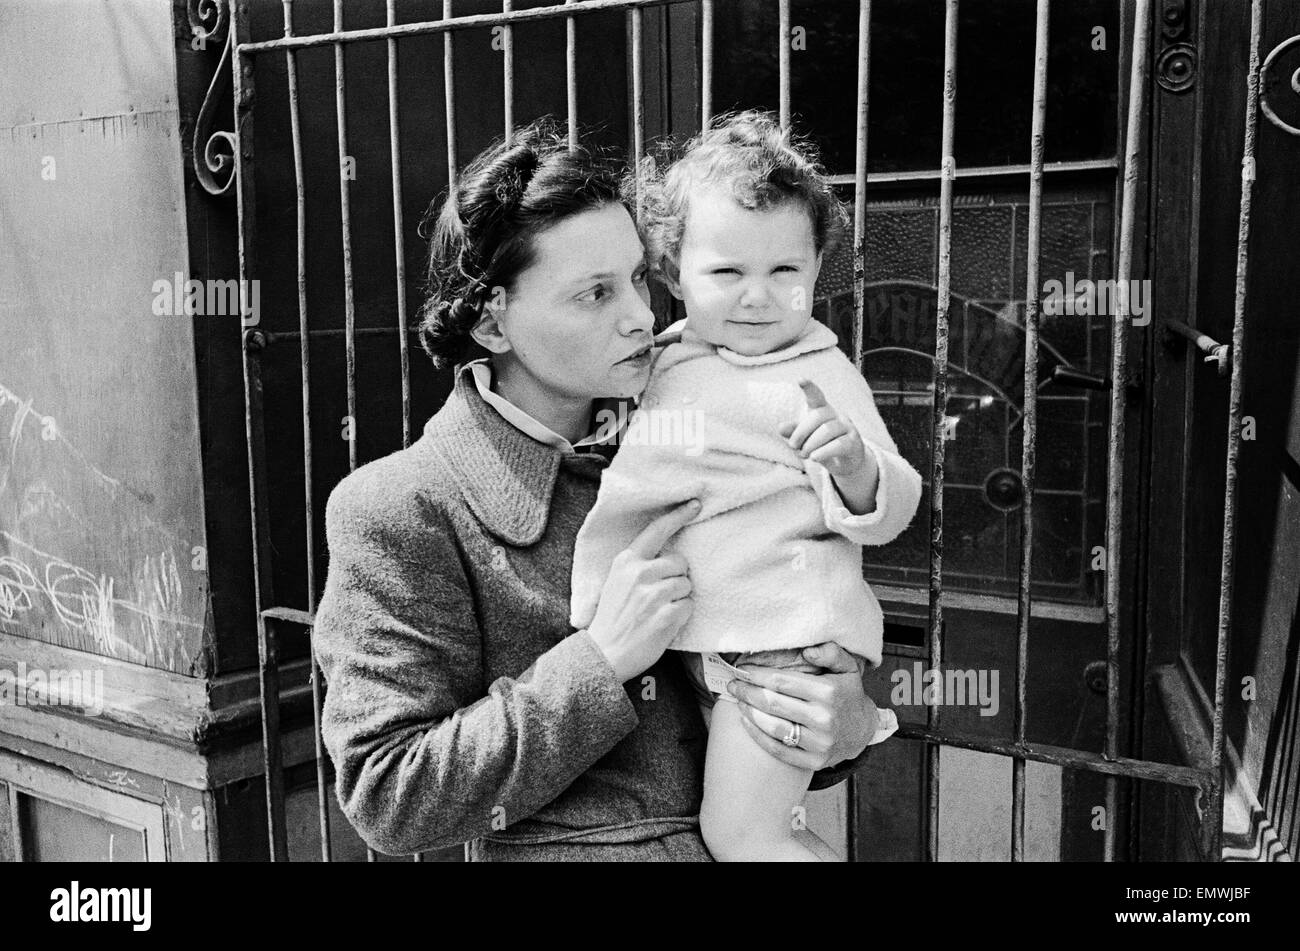 Eric Sailing, 1 year and 9 months, with his mother. 20 July 1944 - Stock Image